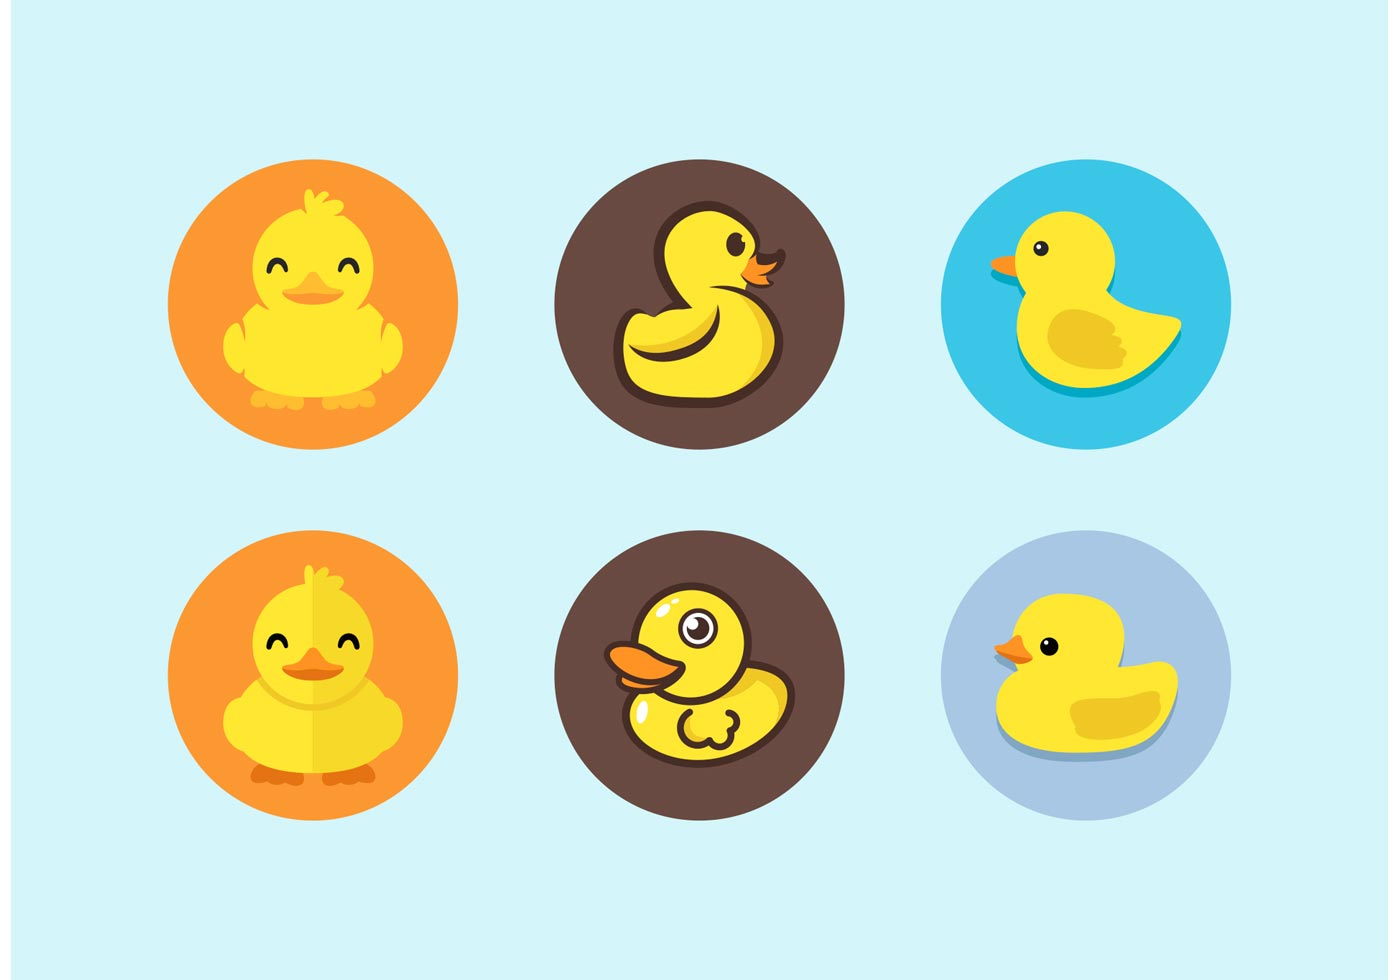 Cute rubber duck icons set download free vector art